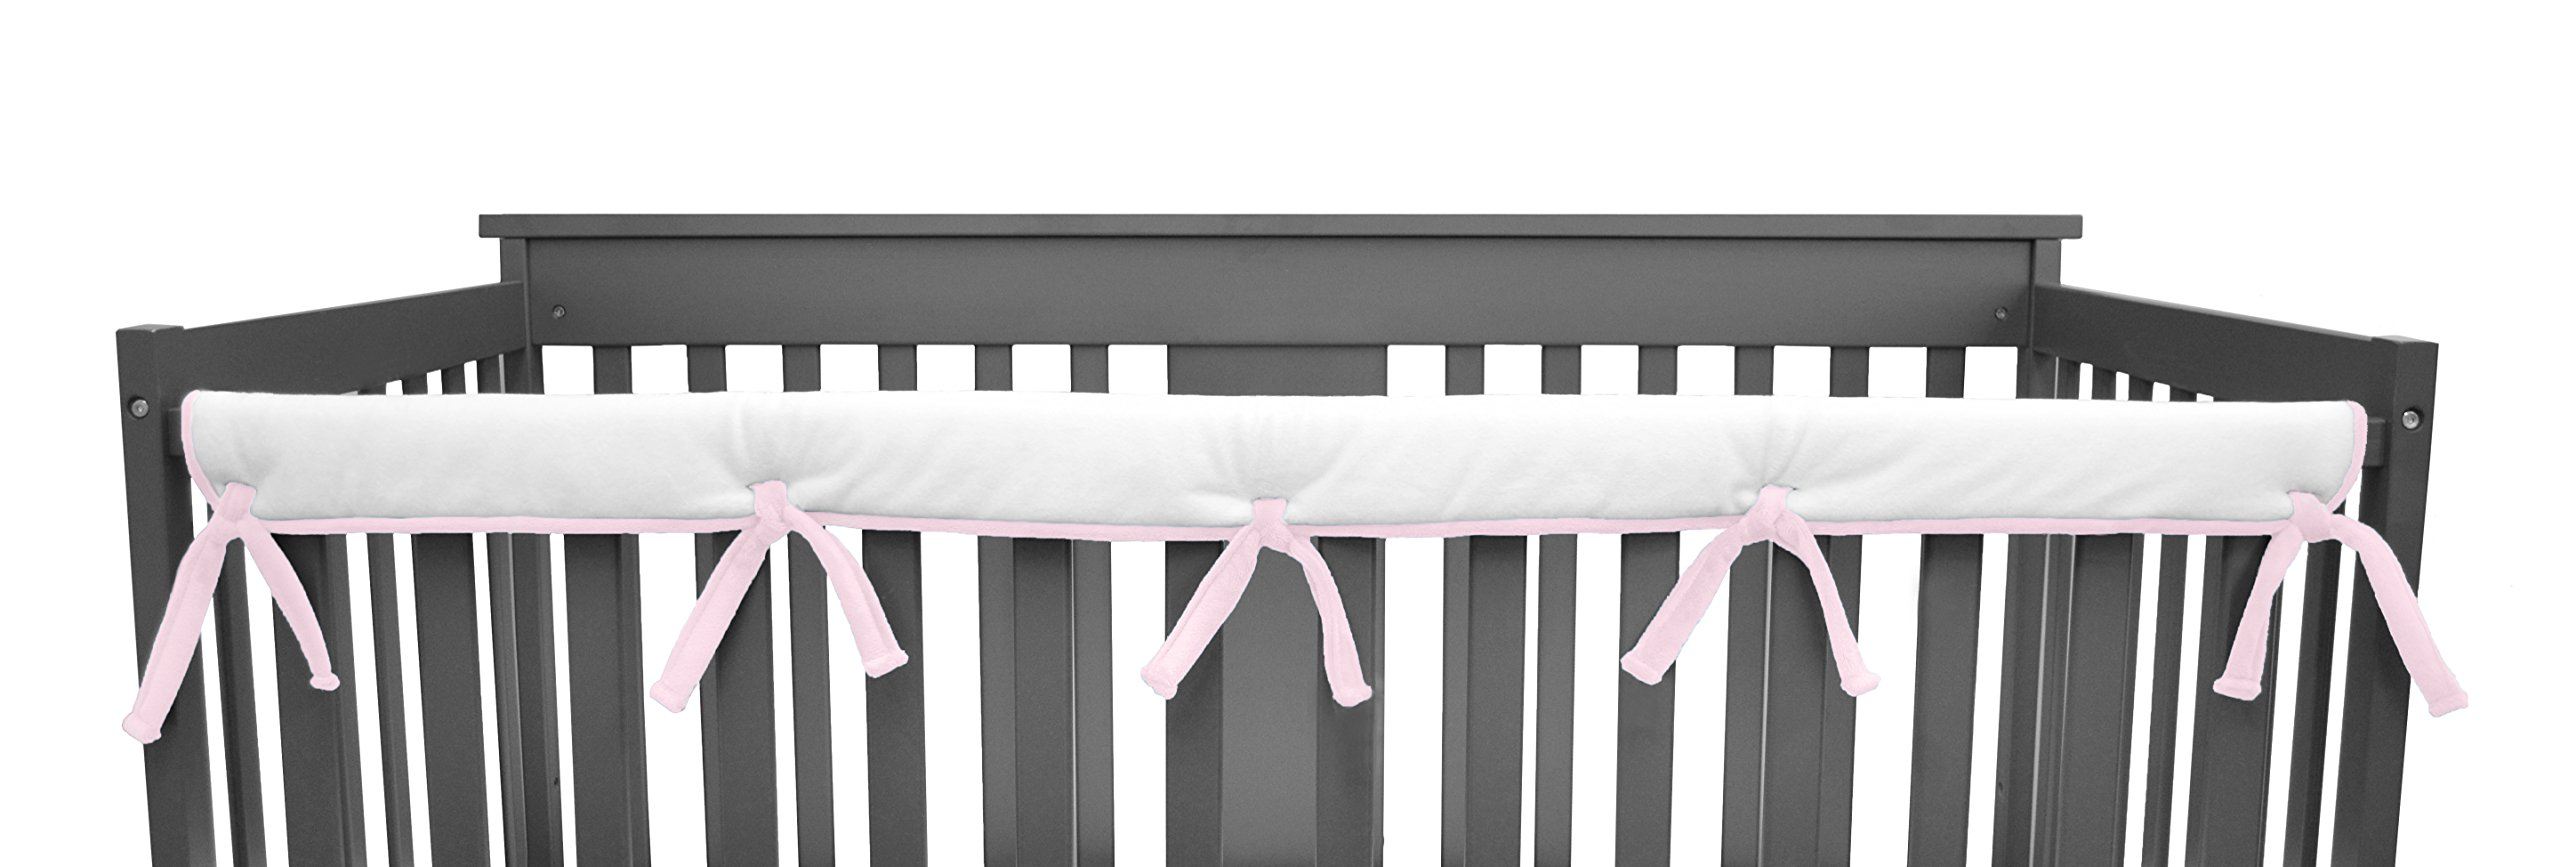 American Baby Company Heavenly Soft Narrow Reversible Crib Cover for Long Rail, Pink/White, for Crib Rails Measuring up to 4'' folded